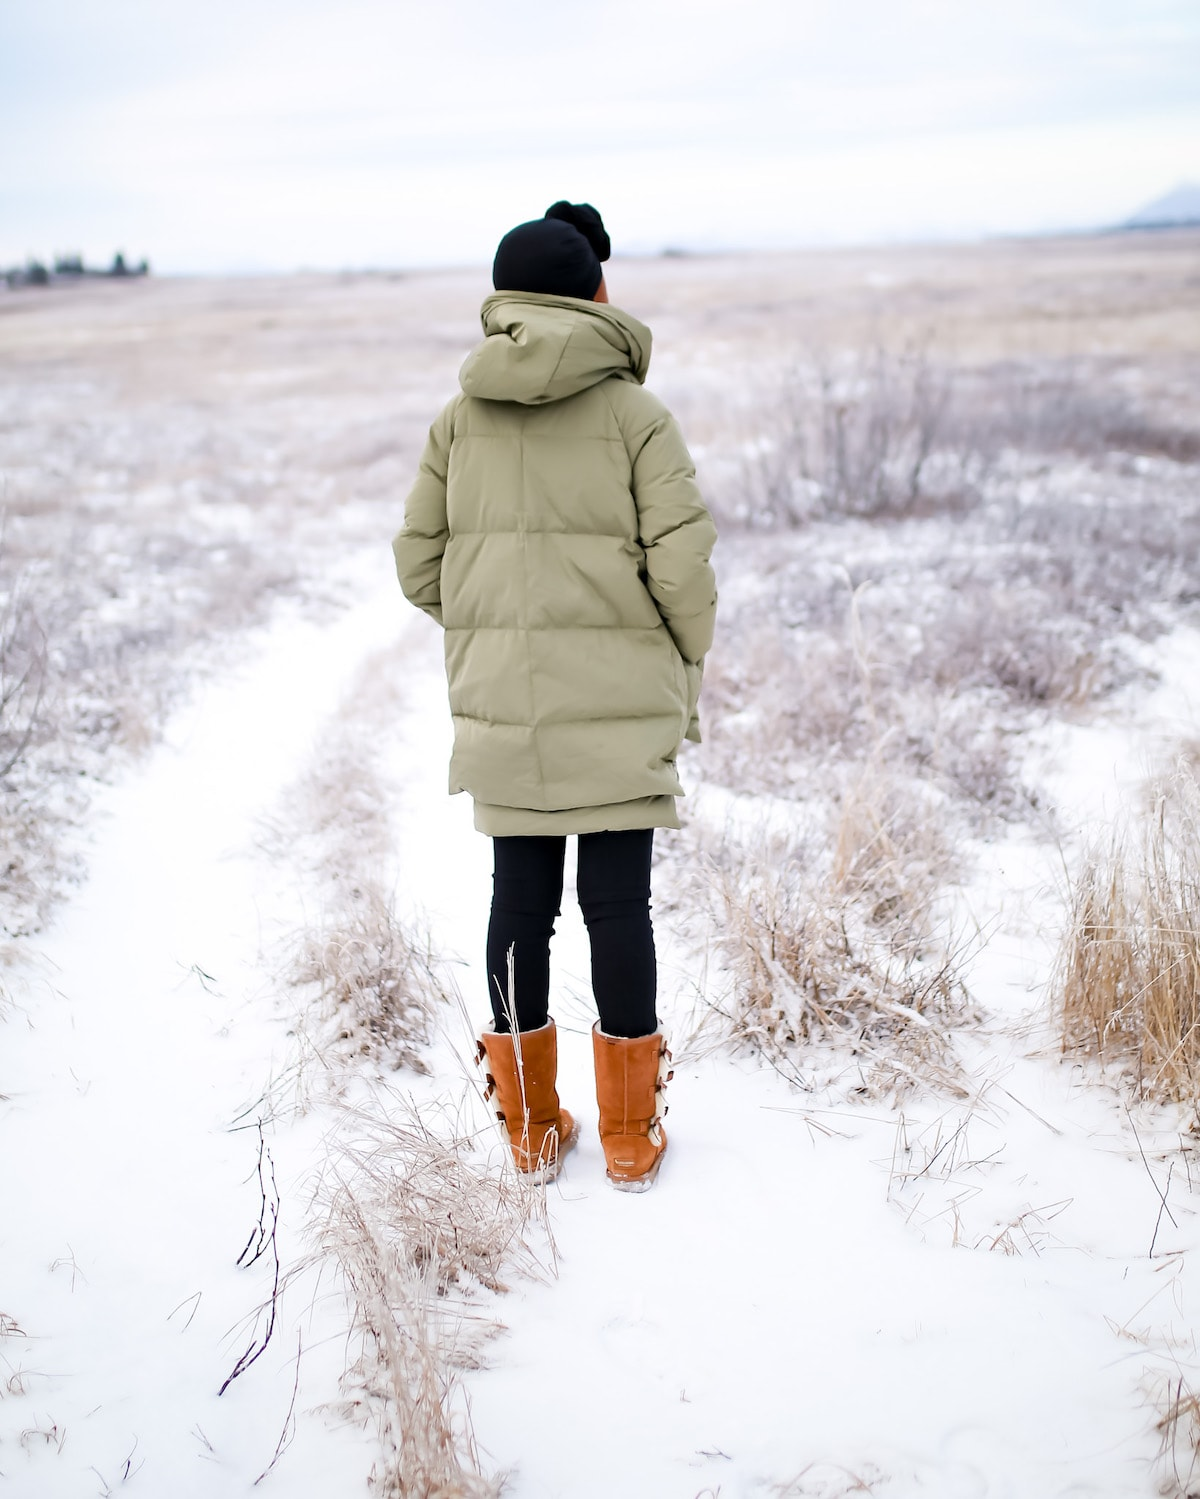 You've heard it all about the Orolay thickened down jacket. But is this 90% down winter coat is good as they say? I put it to test in Alaska! Read this Orolay down jacket review details.